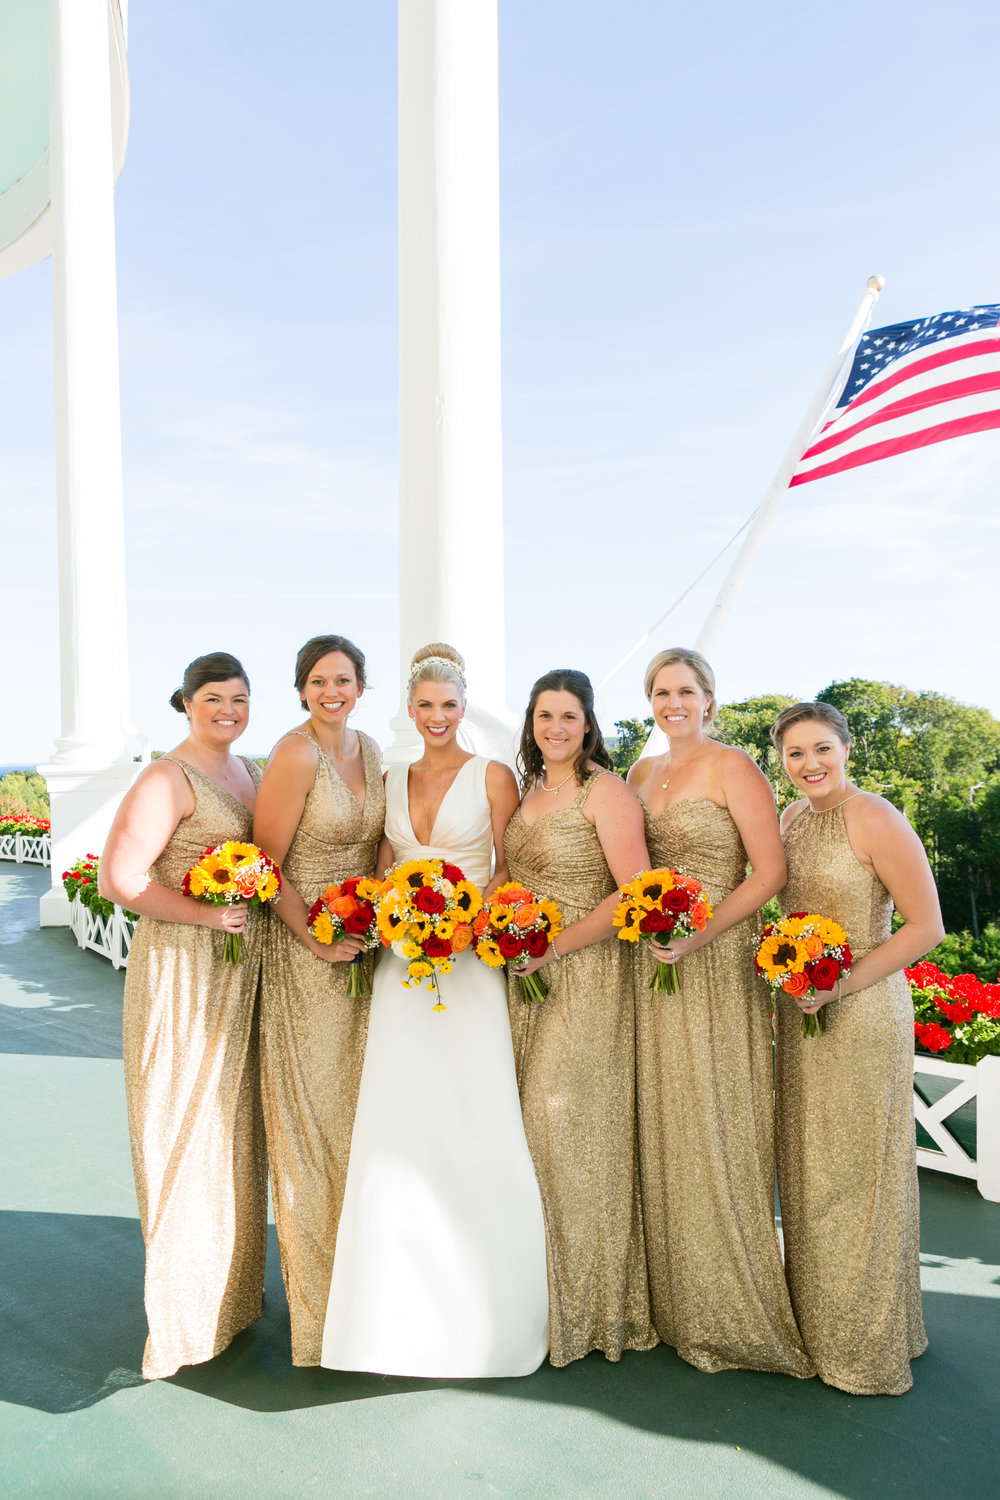 MackinacWeddingAndrejkaKristaRyan-650.jpg